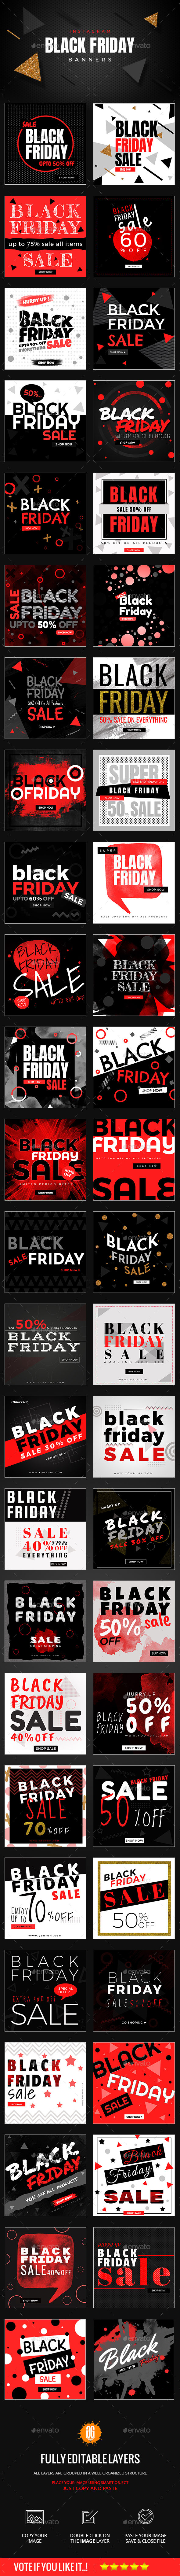 50 Black Friday Instagram Banners - Social Media Web Elements